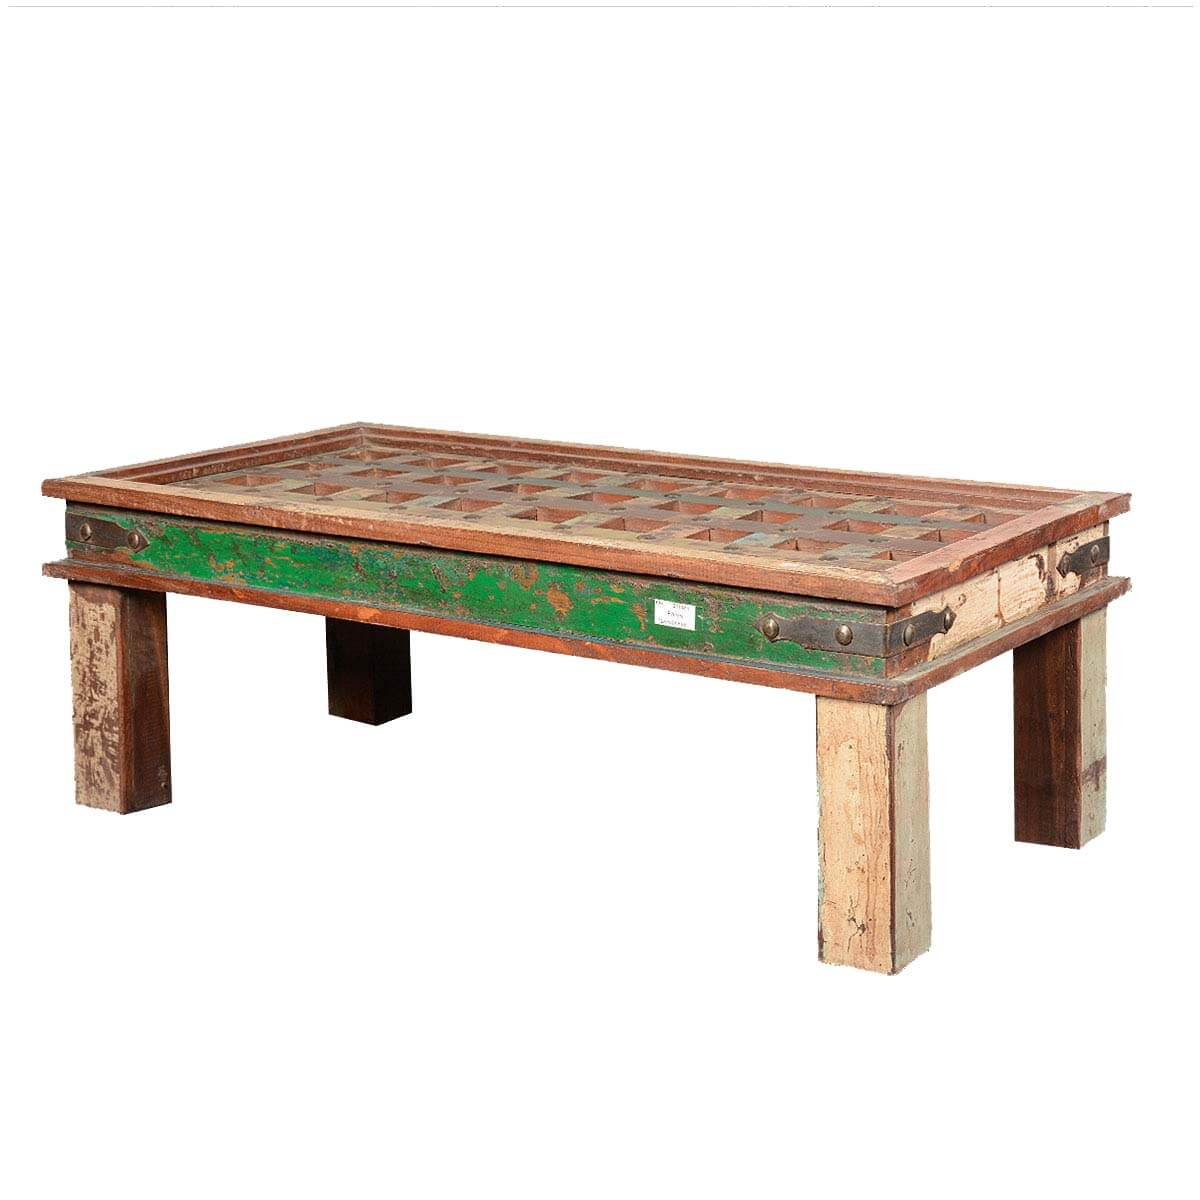 Rustic Coffee Table French Quarter Reclaimed Wood Lattice Top